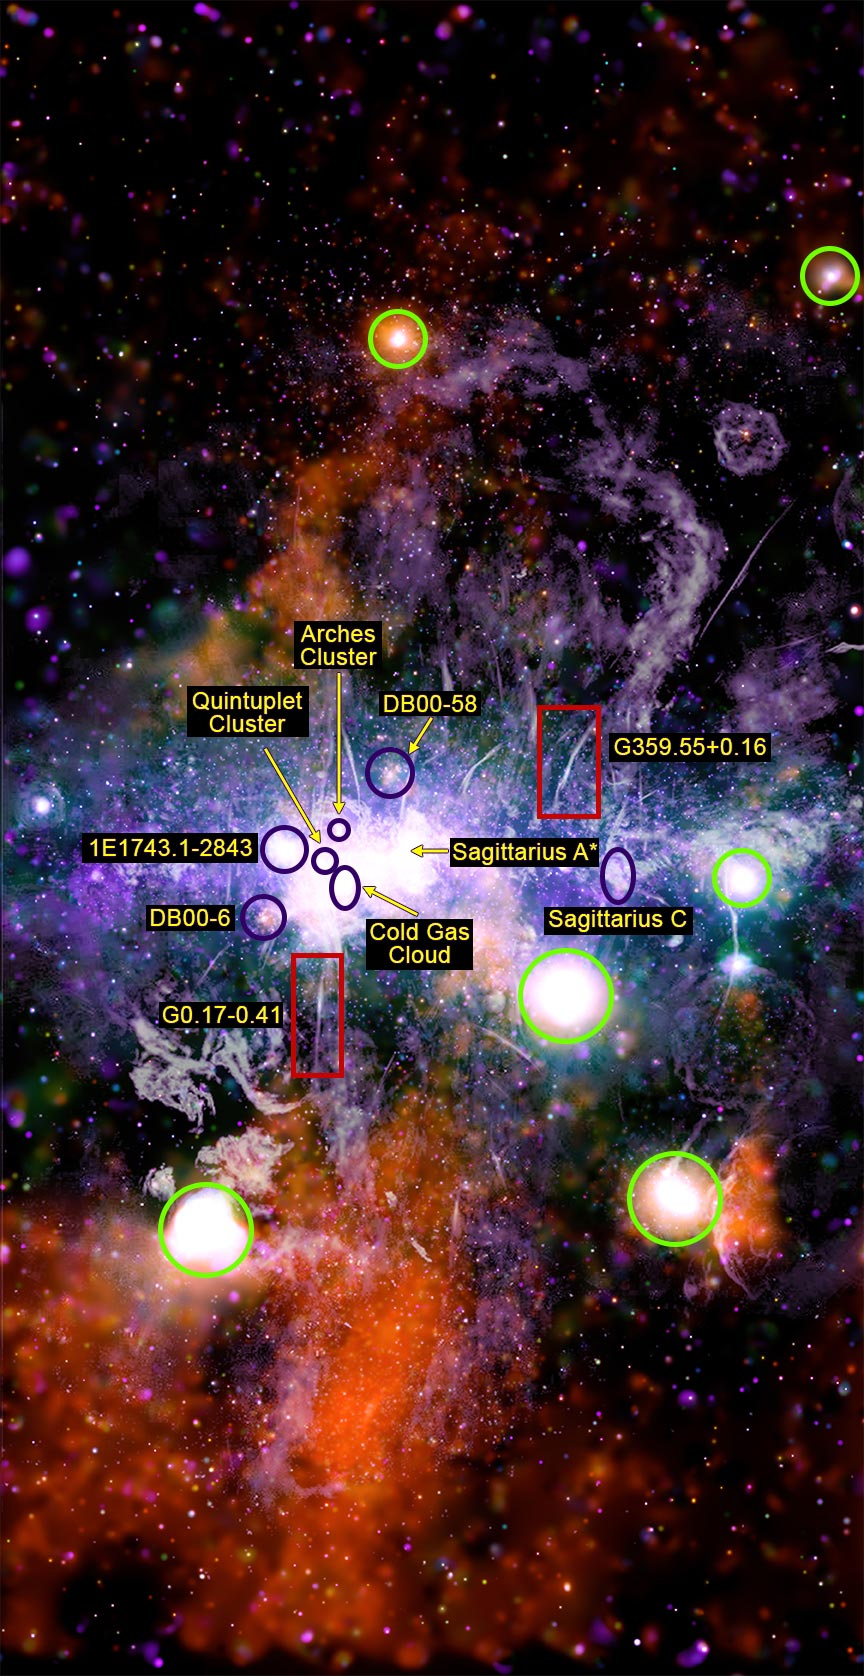 Chandra Survey of Galactic Center Labeled